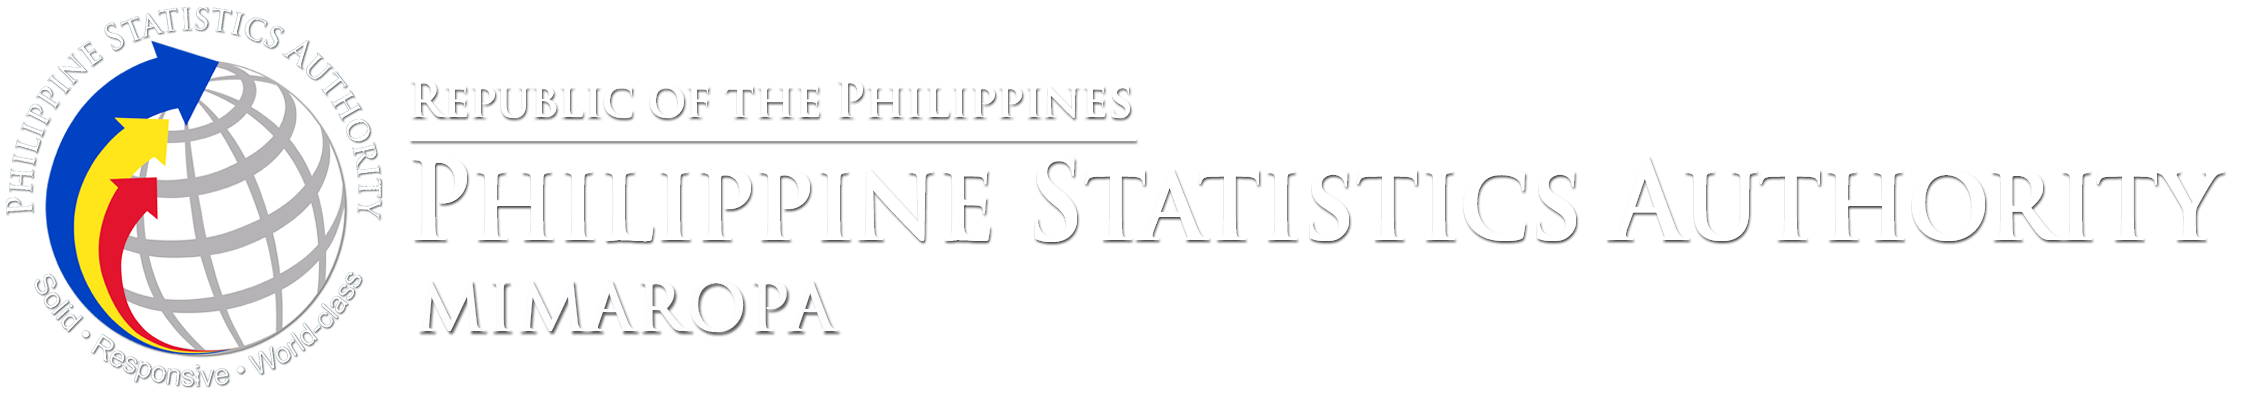 Philippine Statistics Authority MIMAROPA